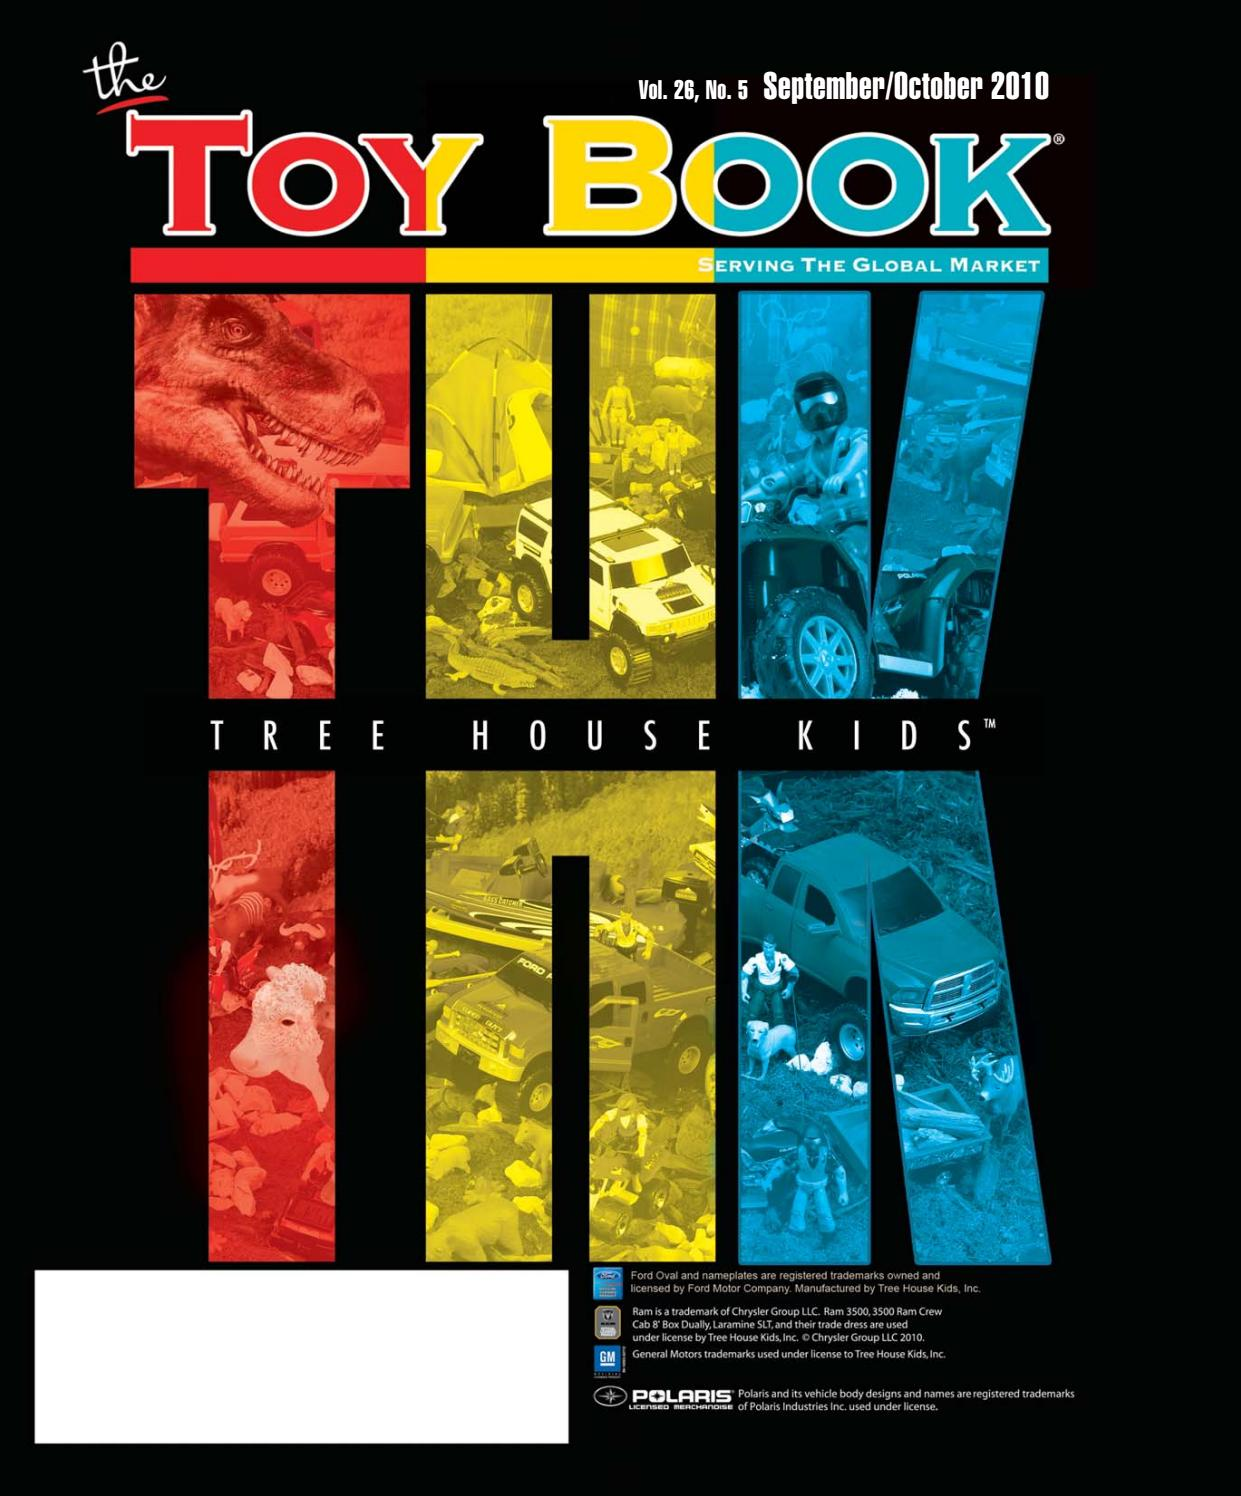 9fc6b7533 September/October 2010 by The Toy Book - issuu